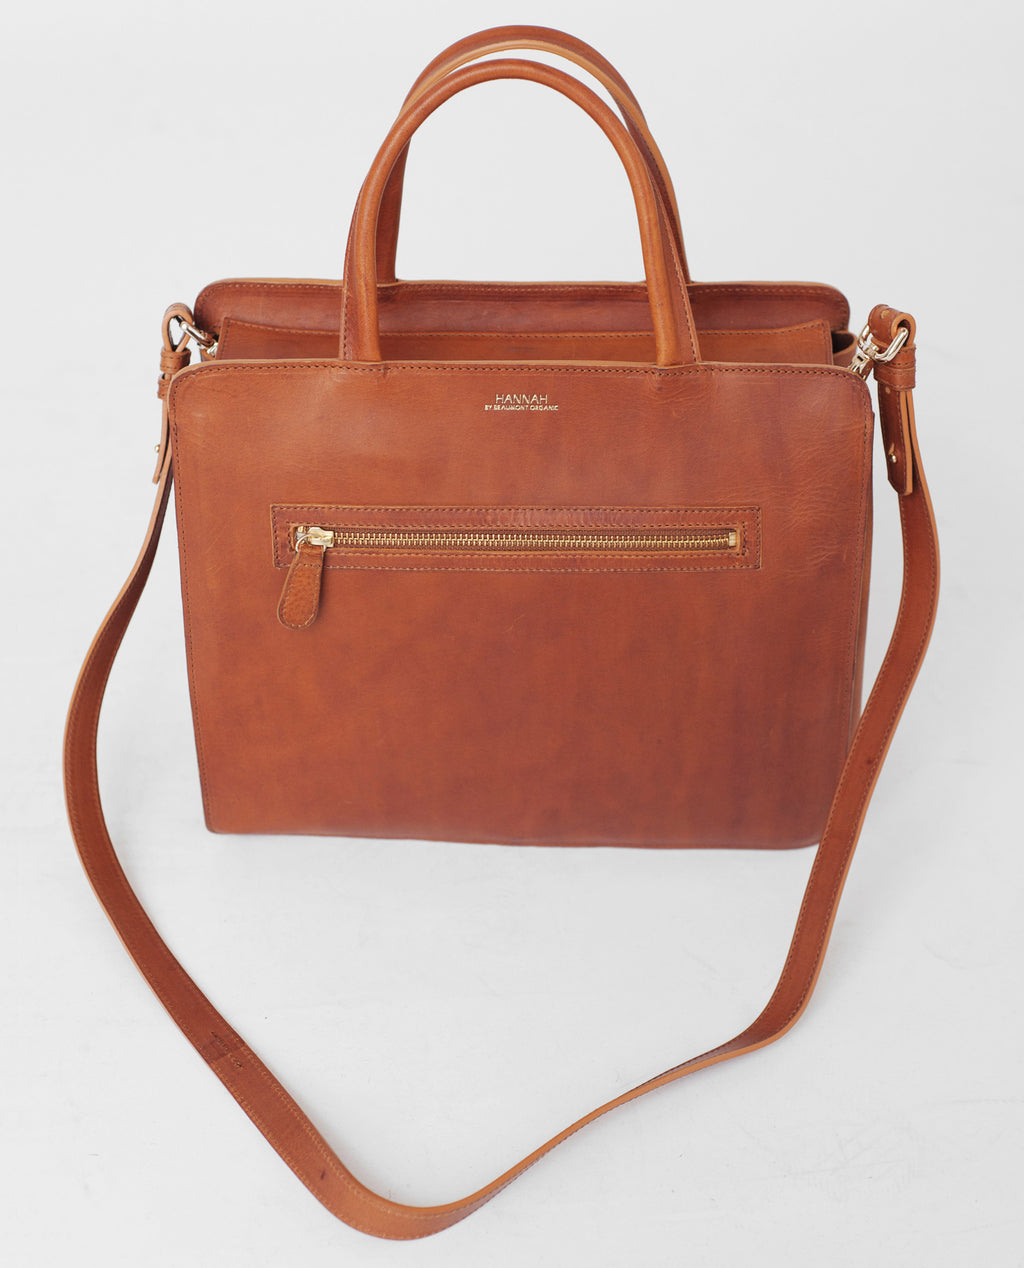 TOULOUSE Leather Shopper Bag In Tan